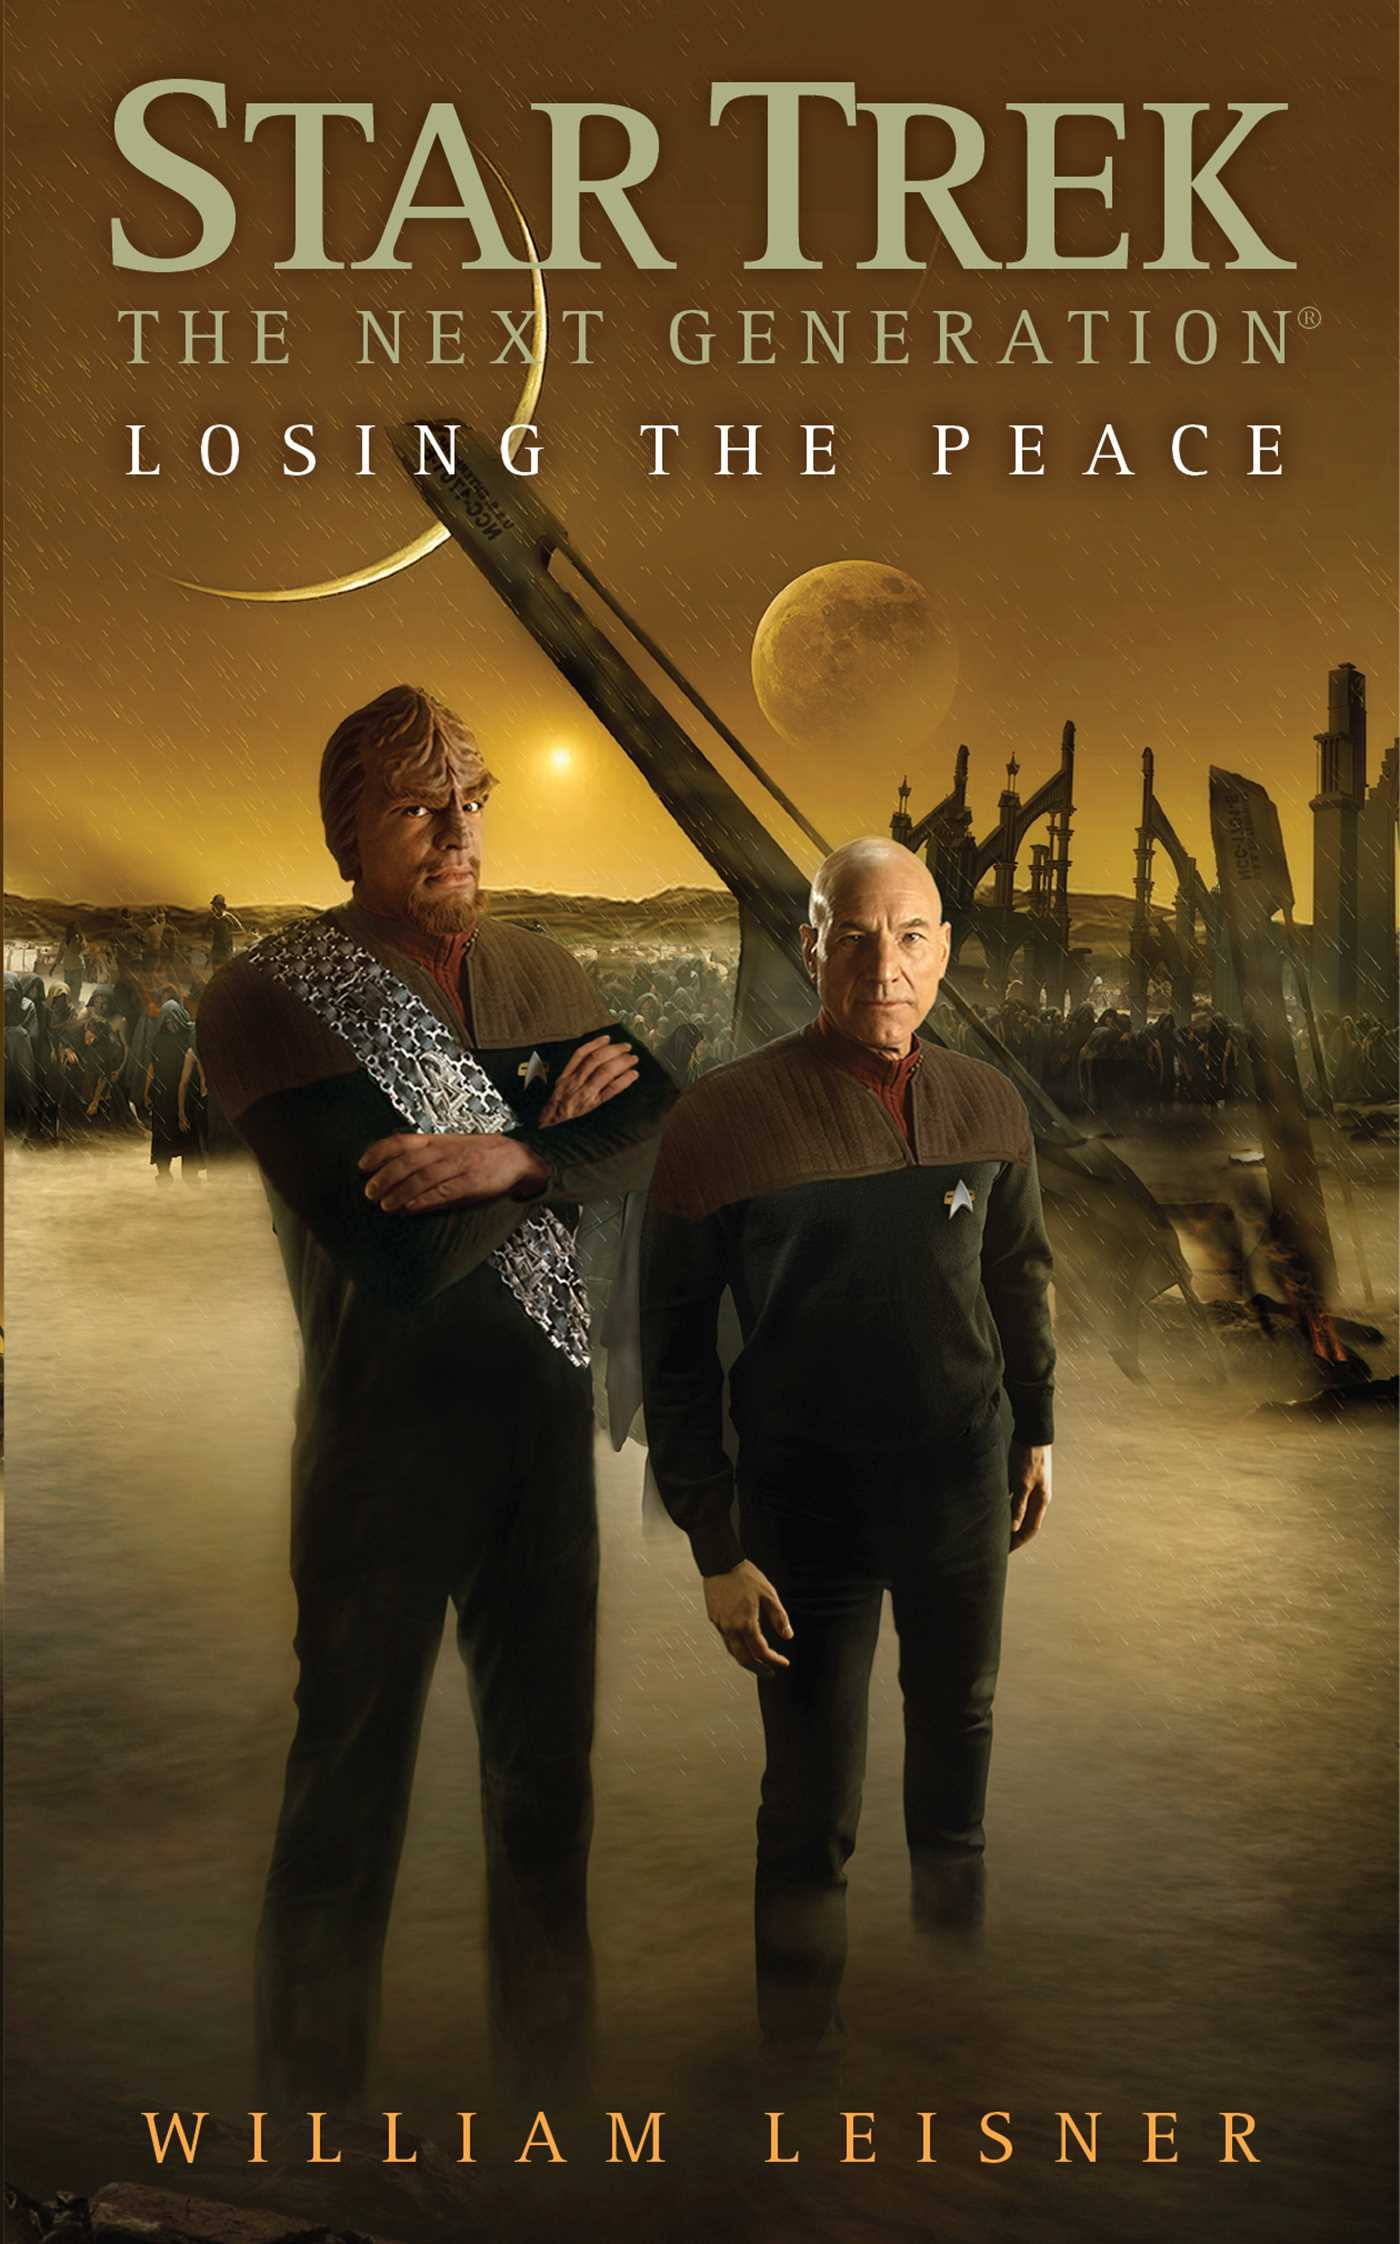 Star-trek-the-next-generation-losing-the-peace-9781439123416_hr